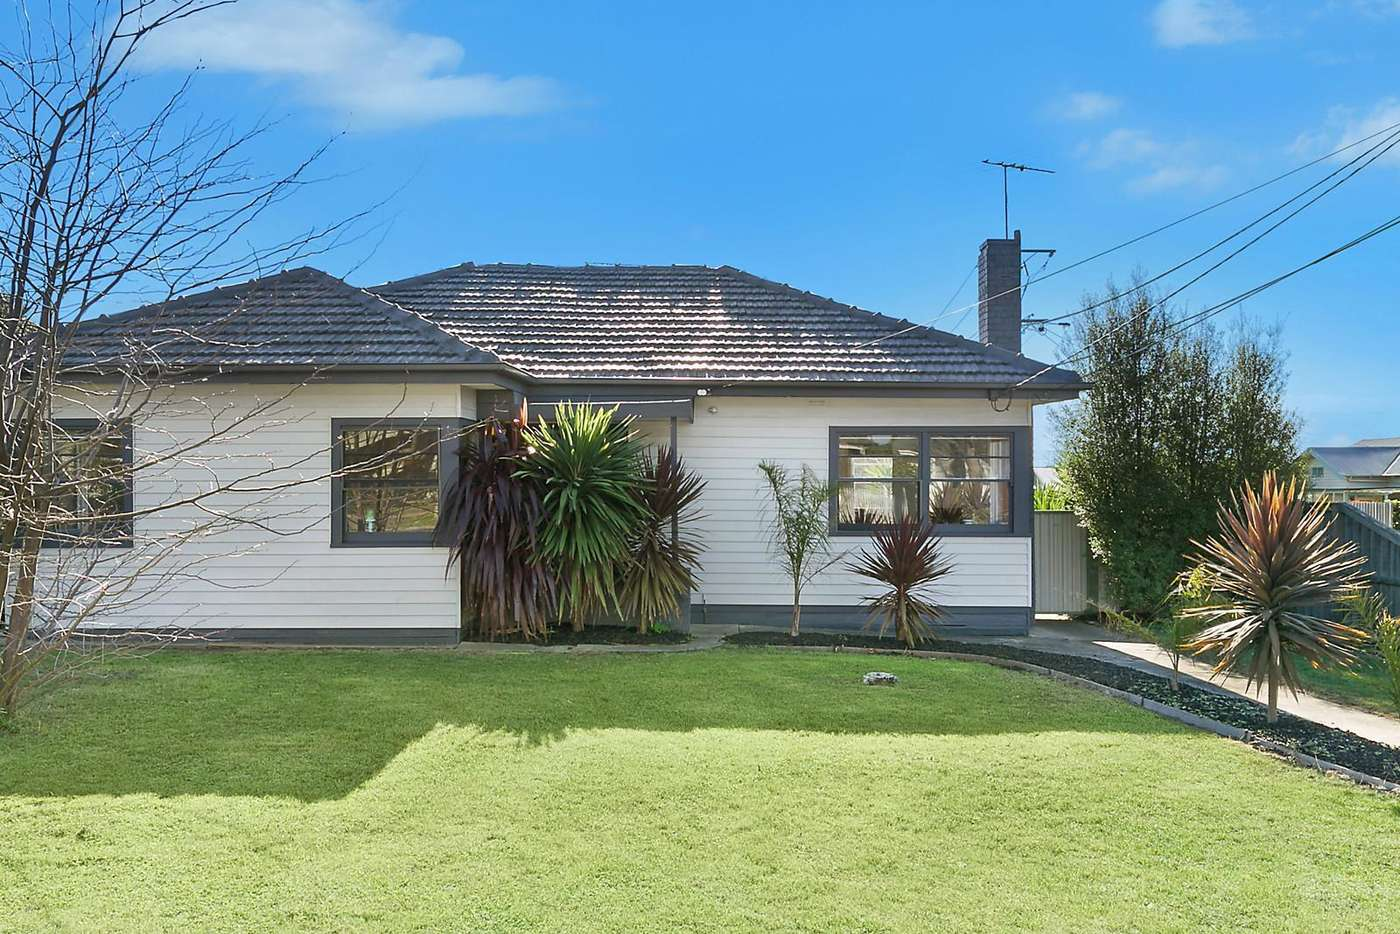 Main view of Homely house listing, 23 Logan Street, Hamlyn Heights VIC 3215